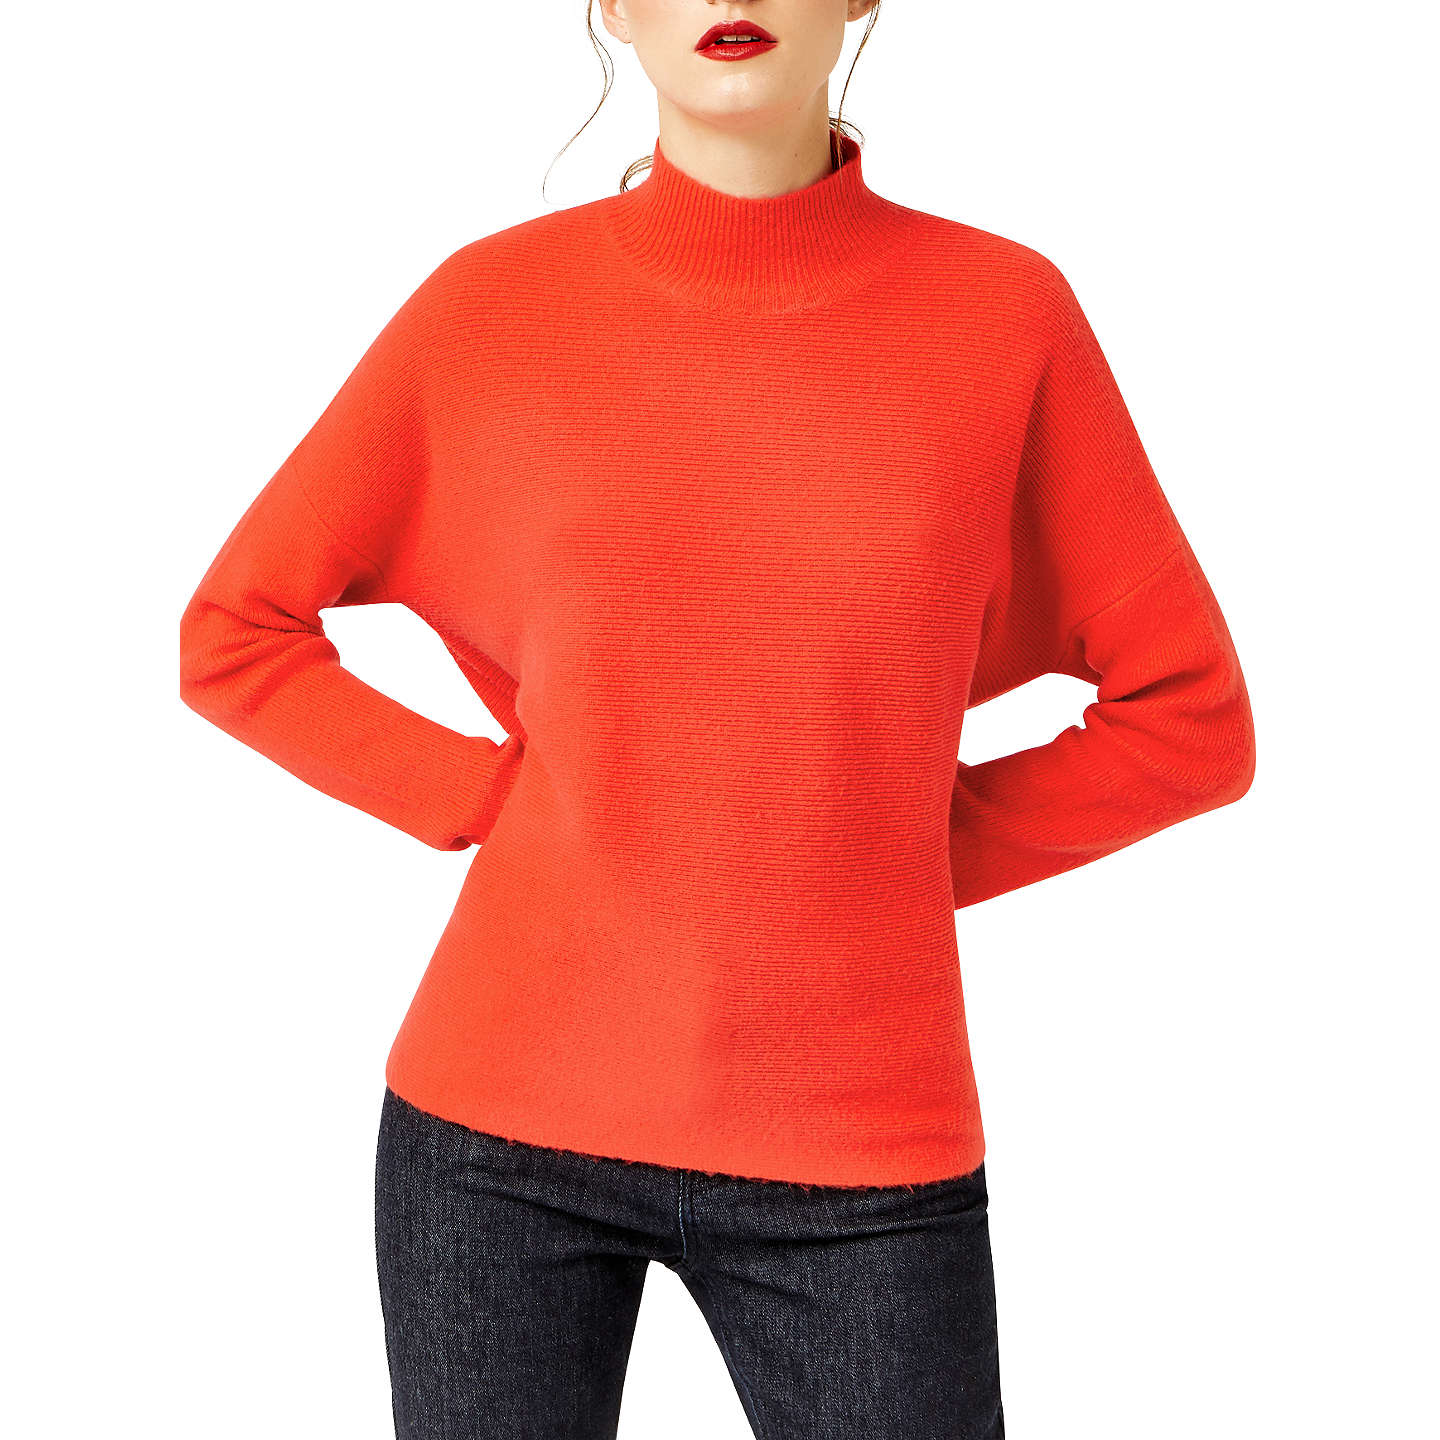 BuyWarehouse Boxy Funnel Neck Ribbed Jumper, Bright Red, S Online at johnlewis.com